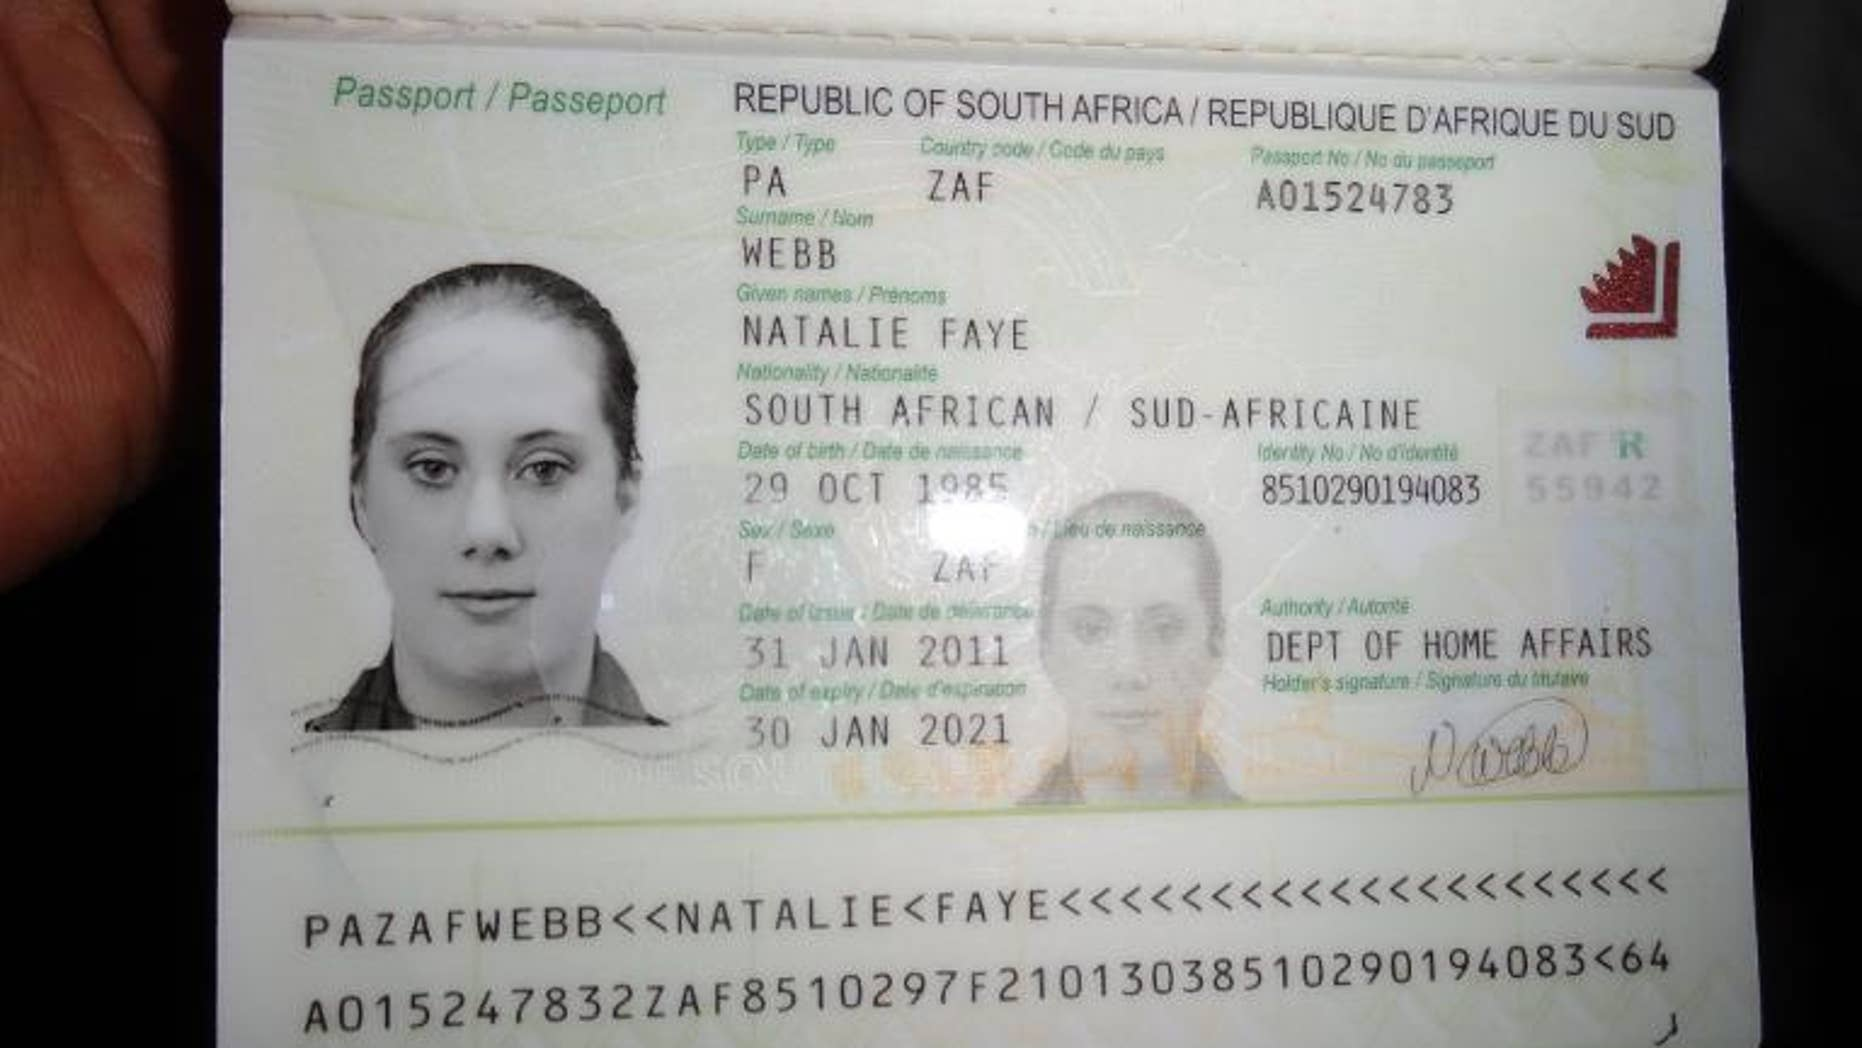 A photo of Samantha Lewthwaite's fake South African passport that was released by Kenyan police in December 2011